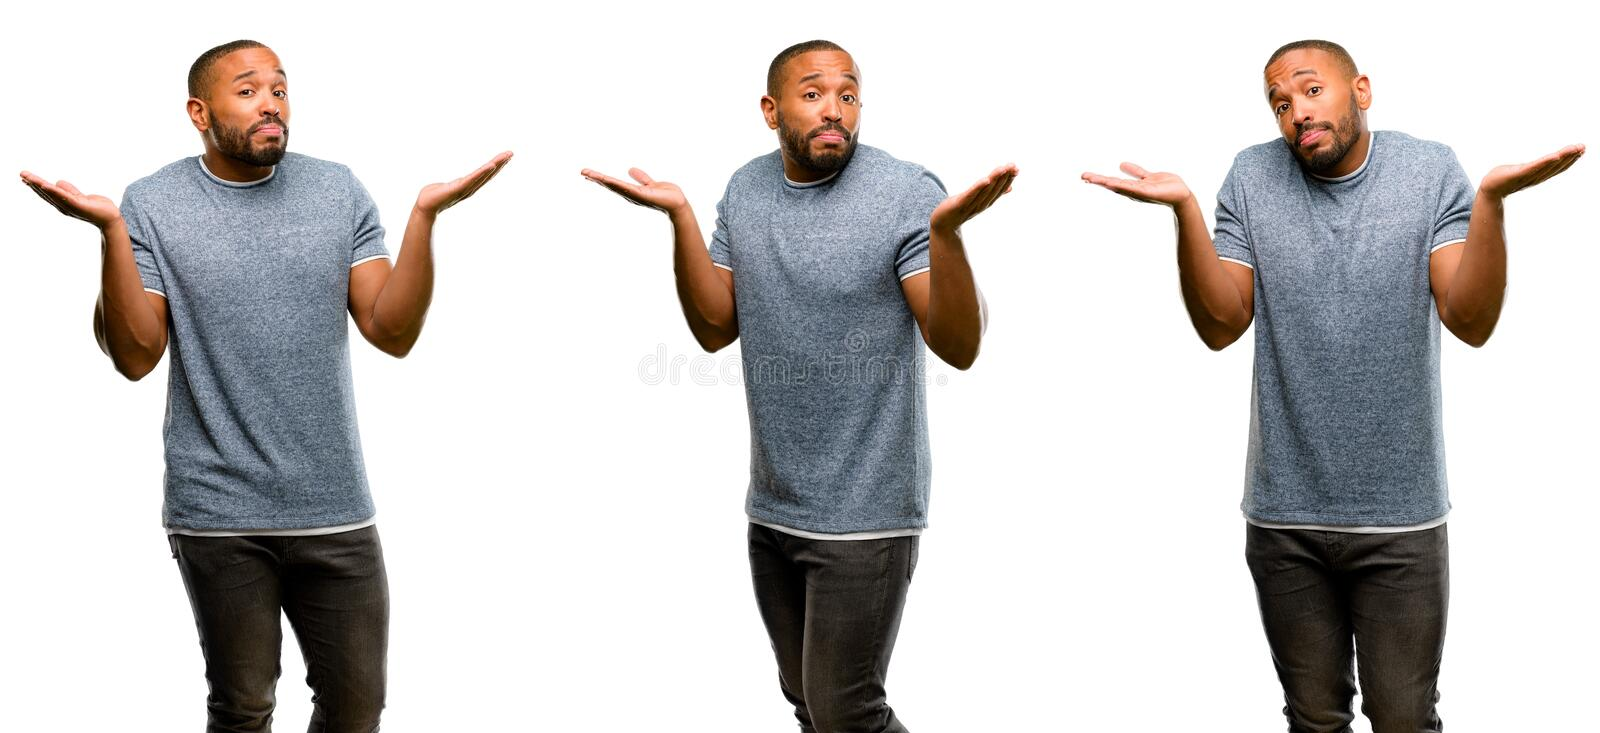 African young man isolated over white background. African american man with beard doubt expression, confuse and wonder concept, uncertain future shrugging royalty free stock photo